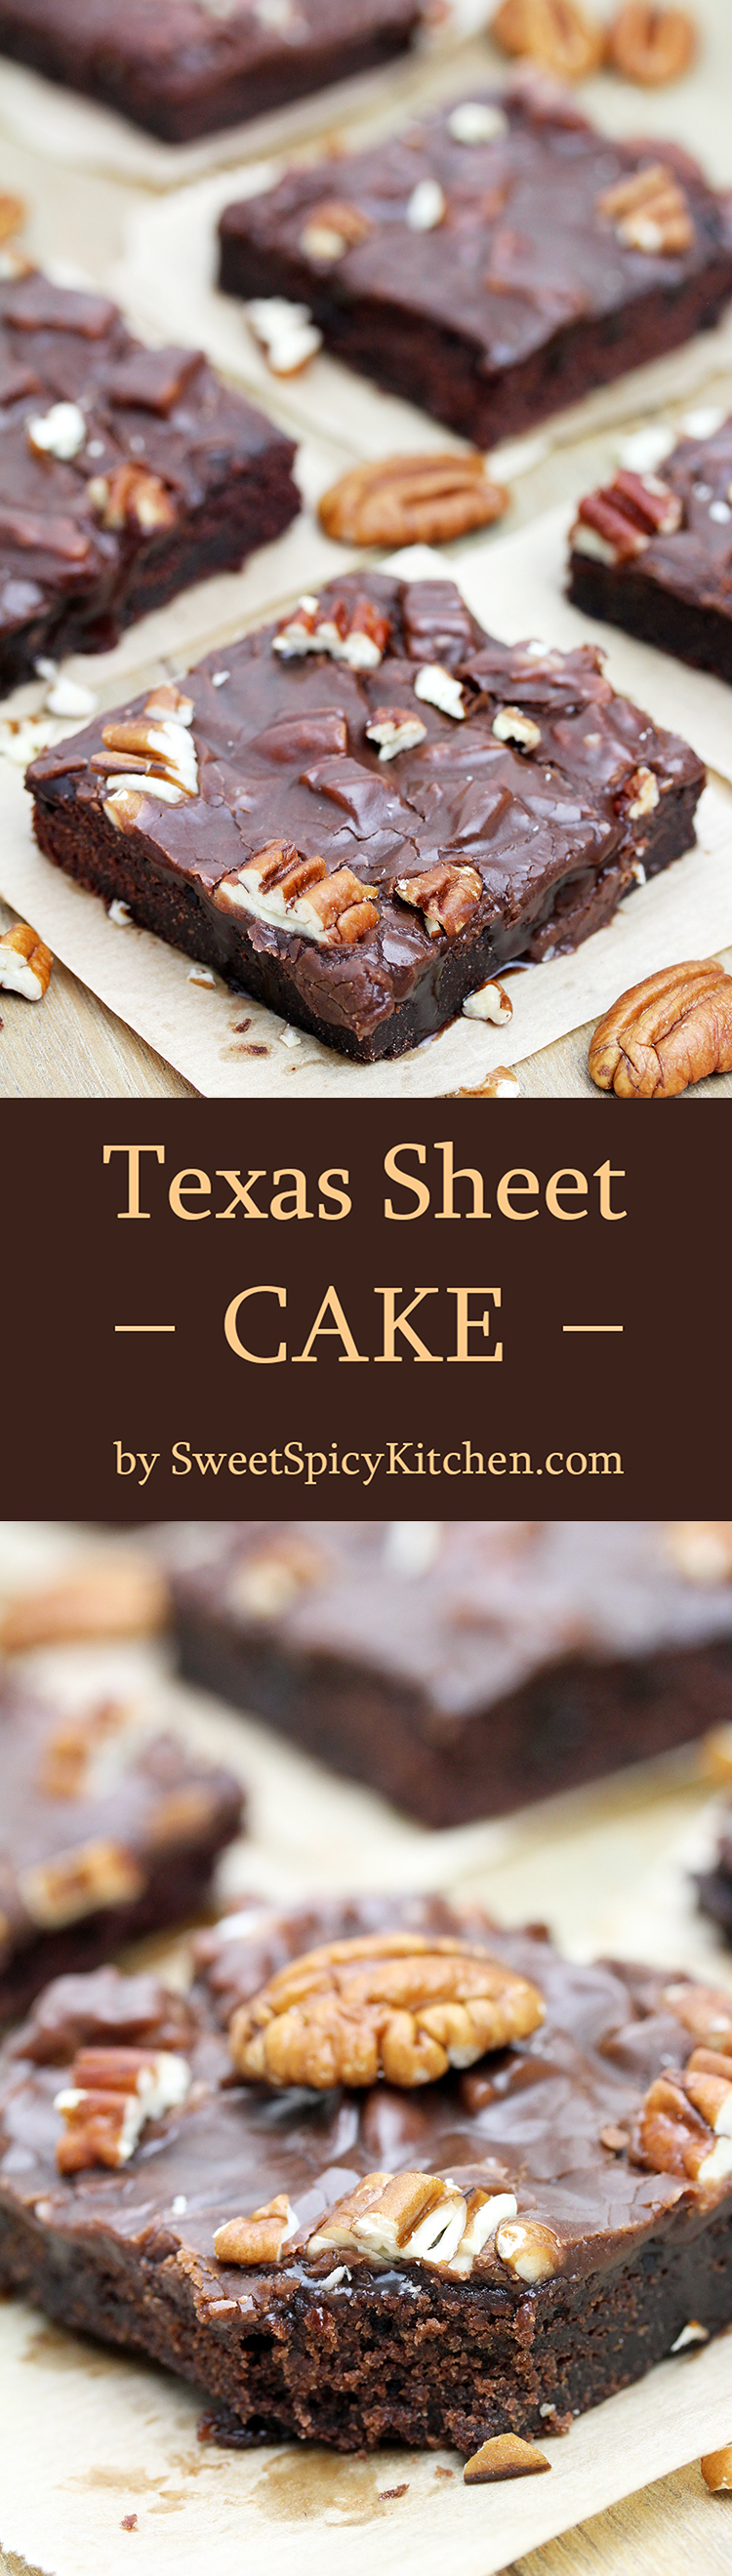 Texas Sheet Cake is thin, super moist chocolate cake, topped with warm chocolate frosting and pecans.